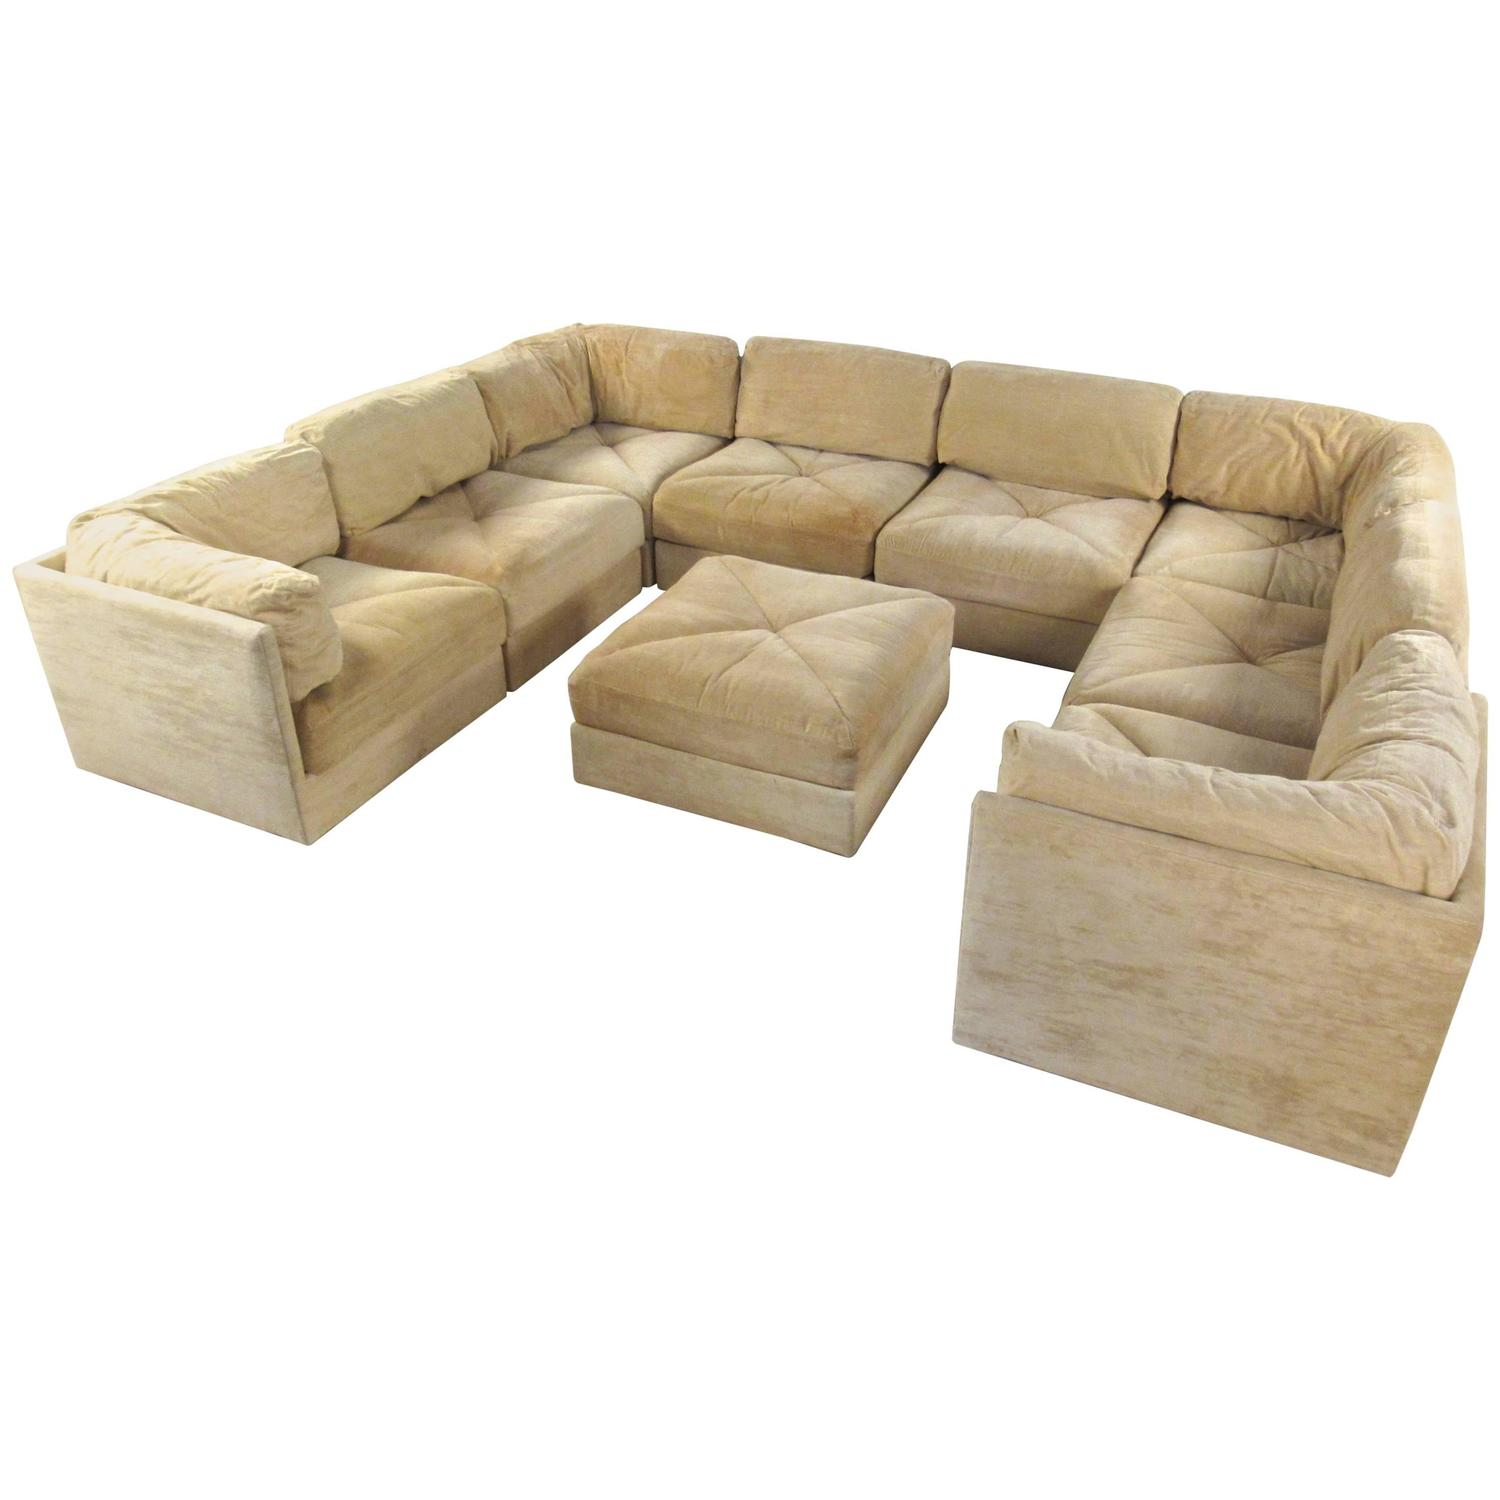 Selig Sectional Sofas 2 For Sale at 1stdibs